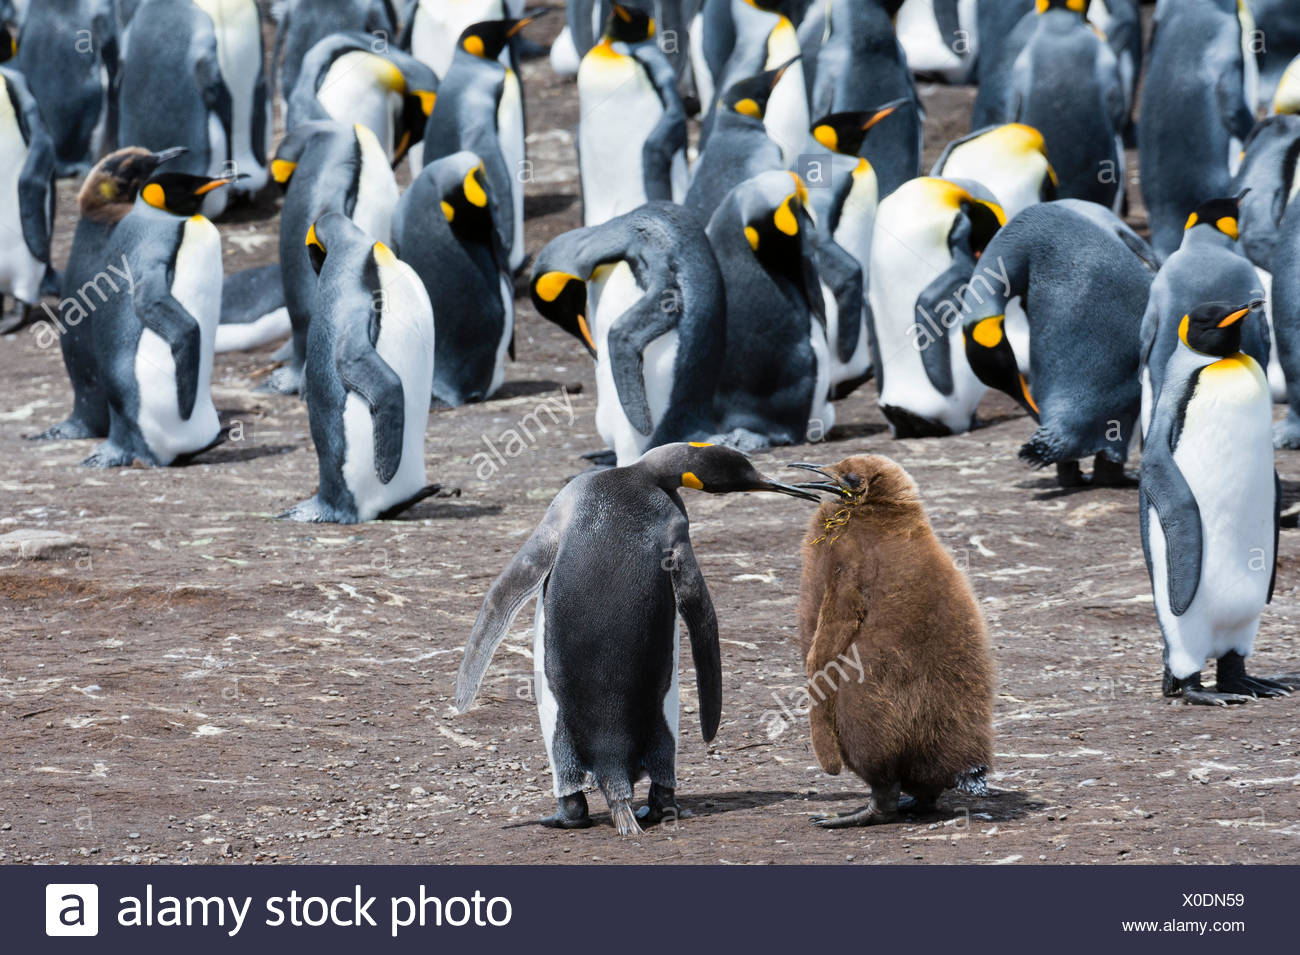 King penguins, Aptenodytes patagonica, mother and chick, in a colony. - Stock Image